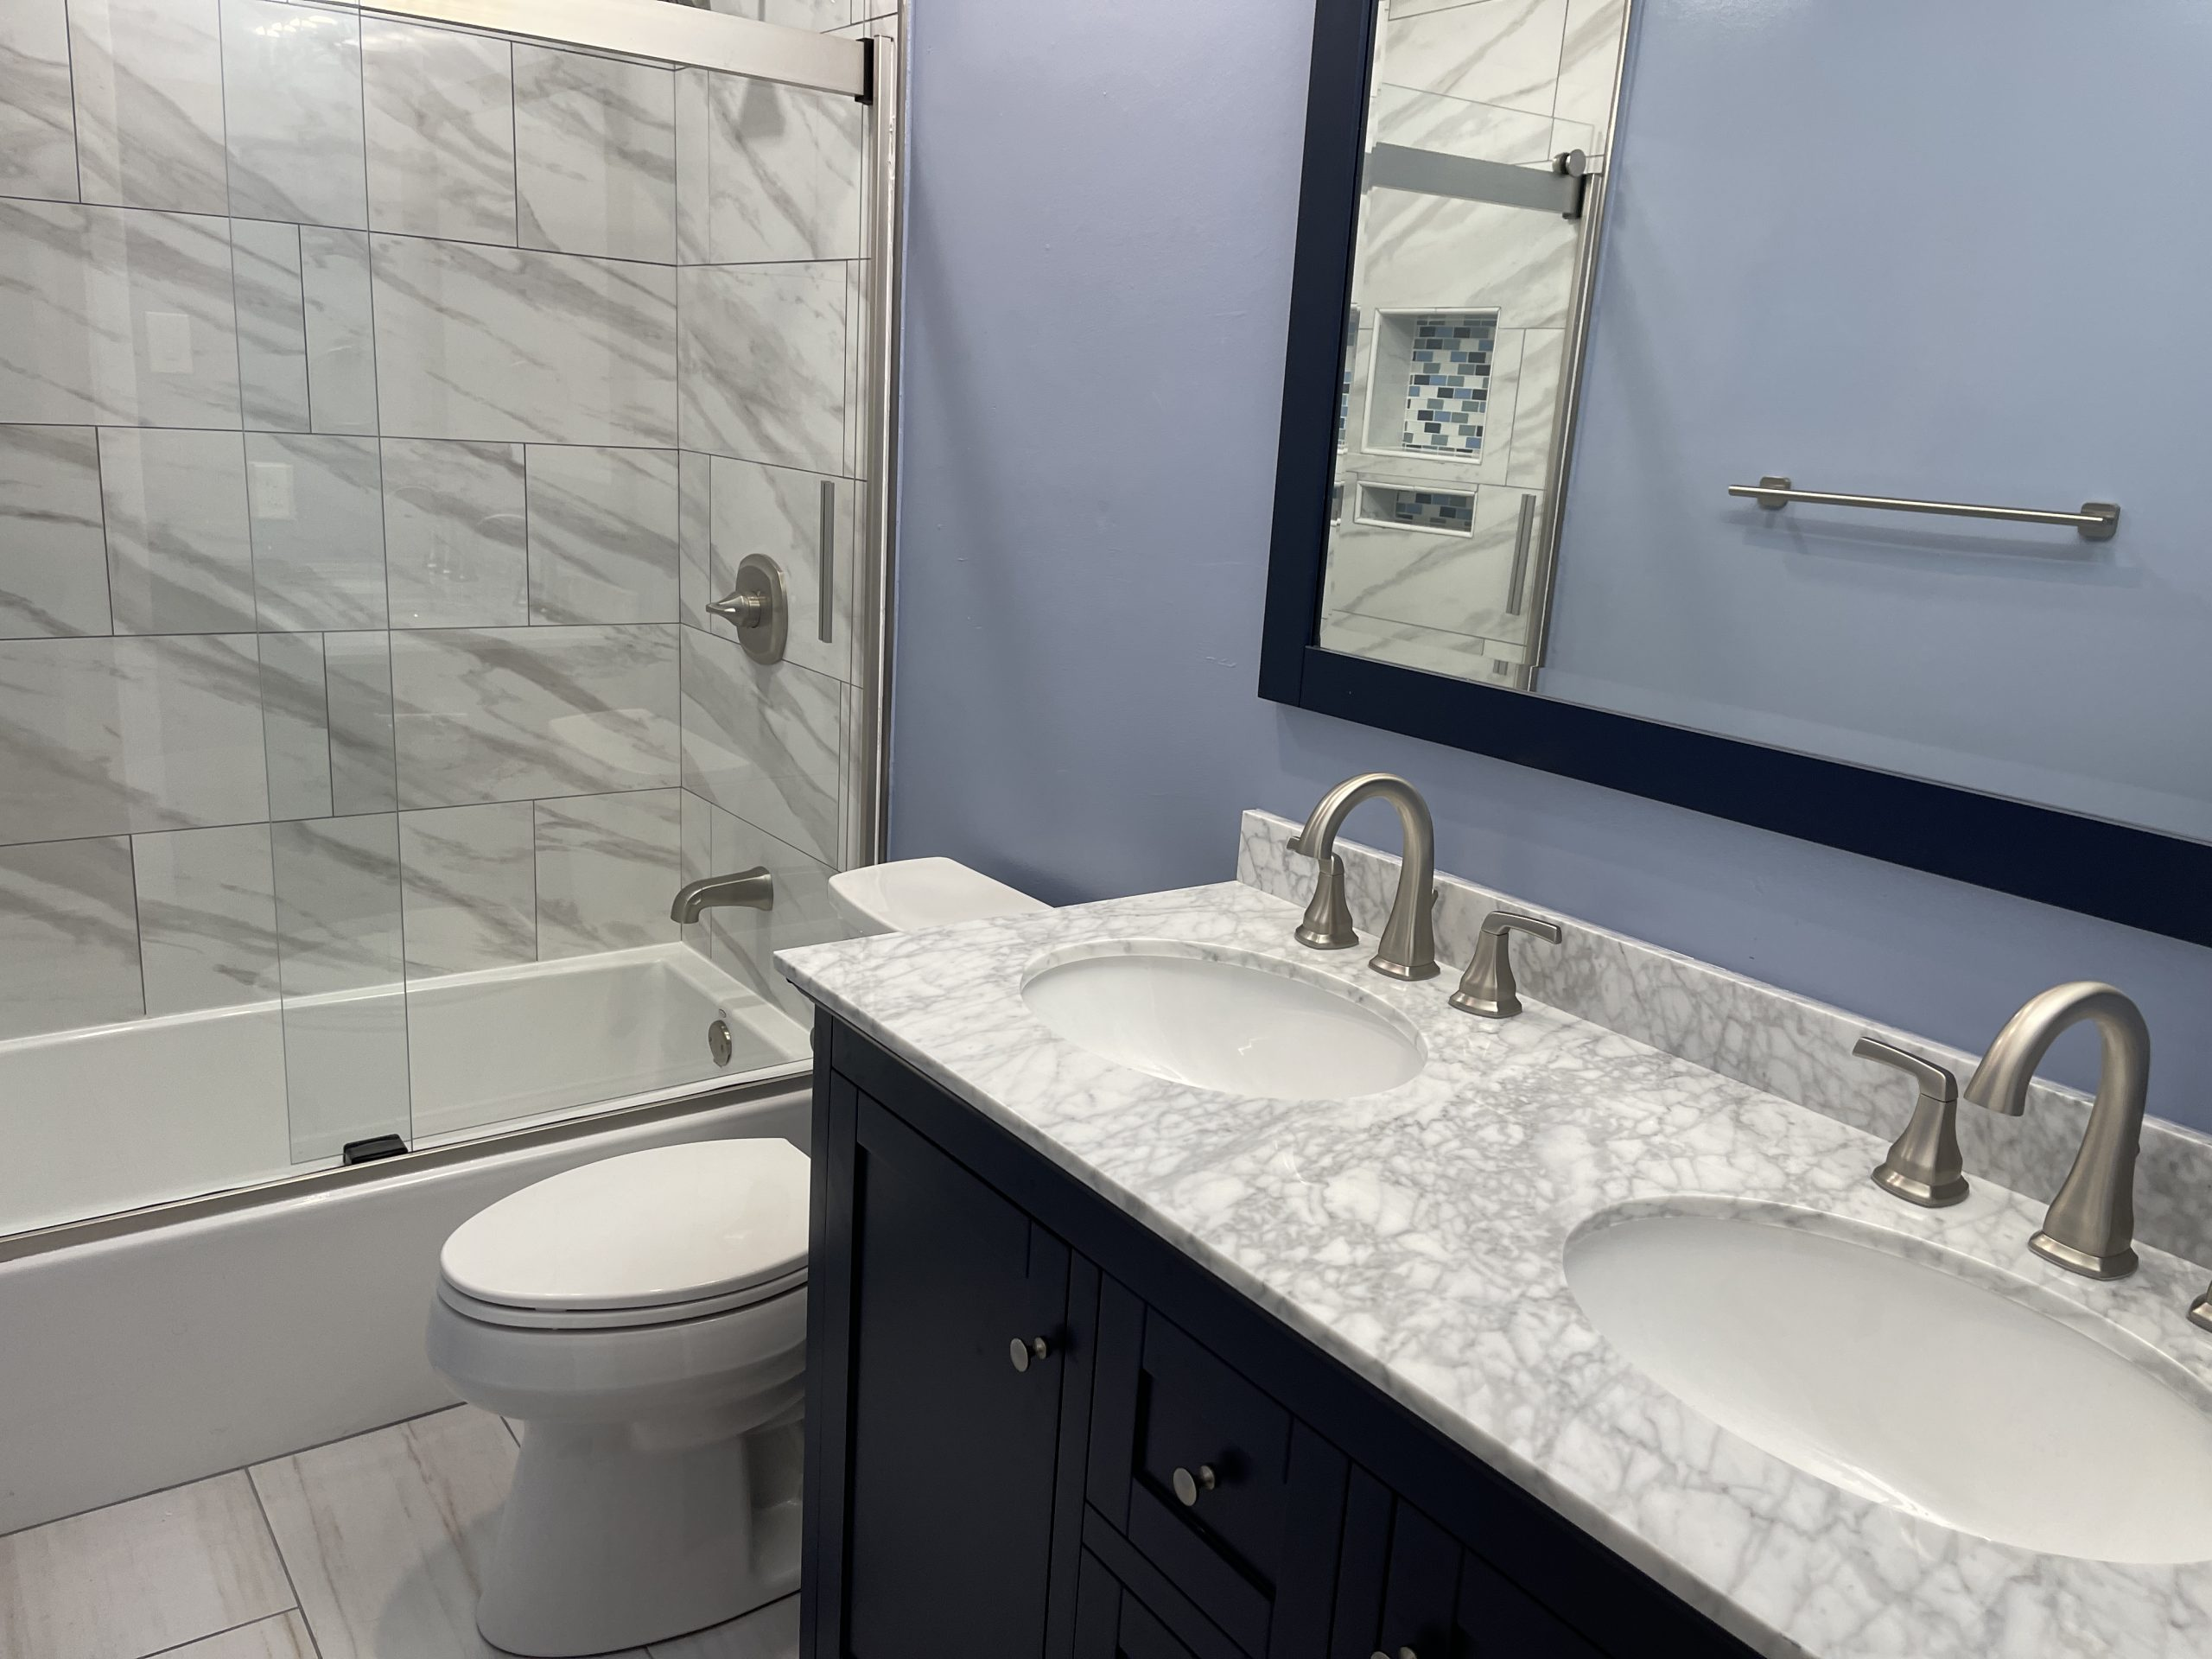 3 Most Important Questions You Need To Ask Yourself When Thinking Of Bathroom Remodeling